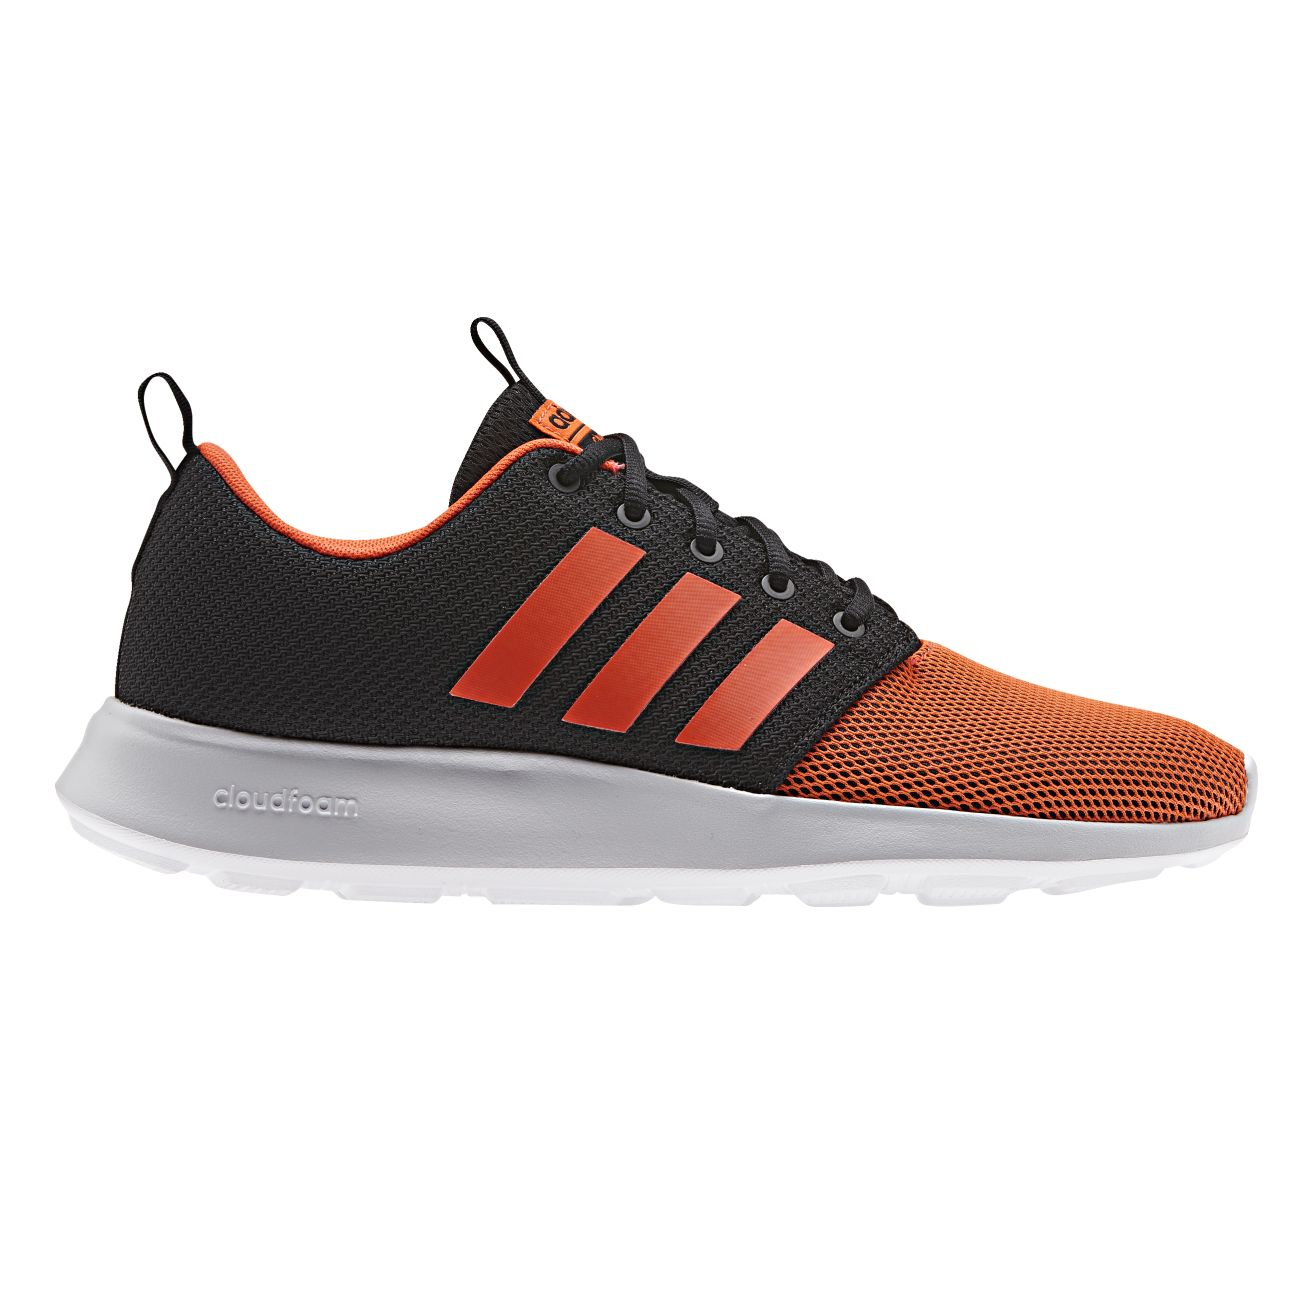 adidas neo cloudfoam swift racer schuhe turnschuhe sneaker herren. Black Bedroom Furniture Sets. Home Design Ideas